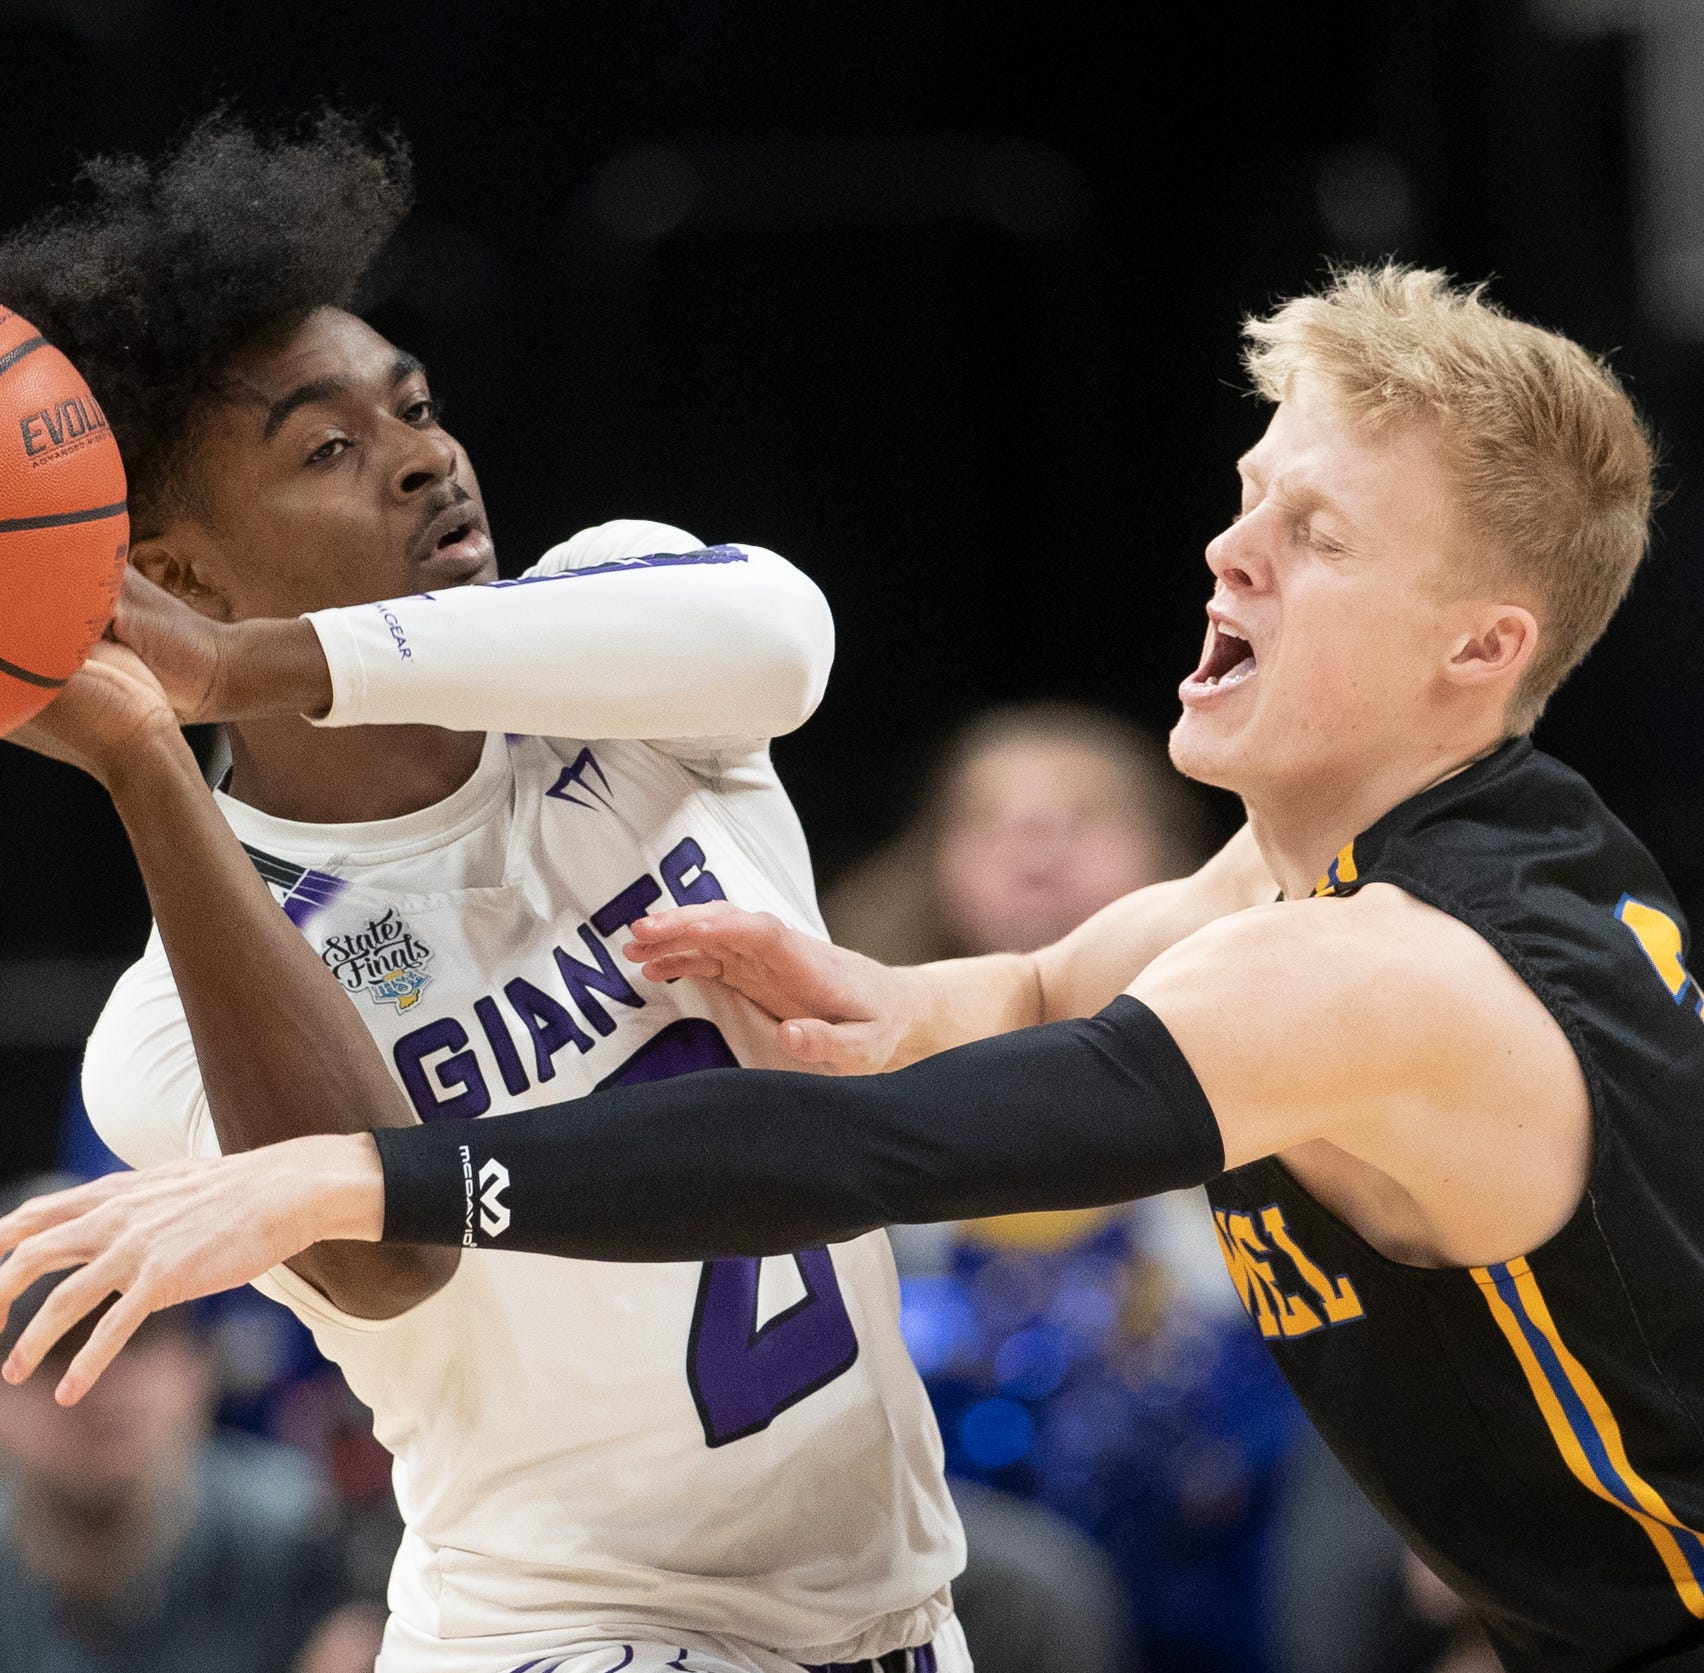 Ben Davis comes up just short in 4A title game: 'We have no reason to put our heads down'